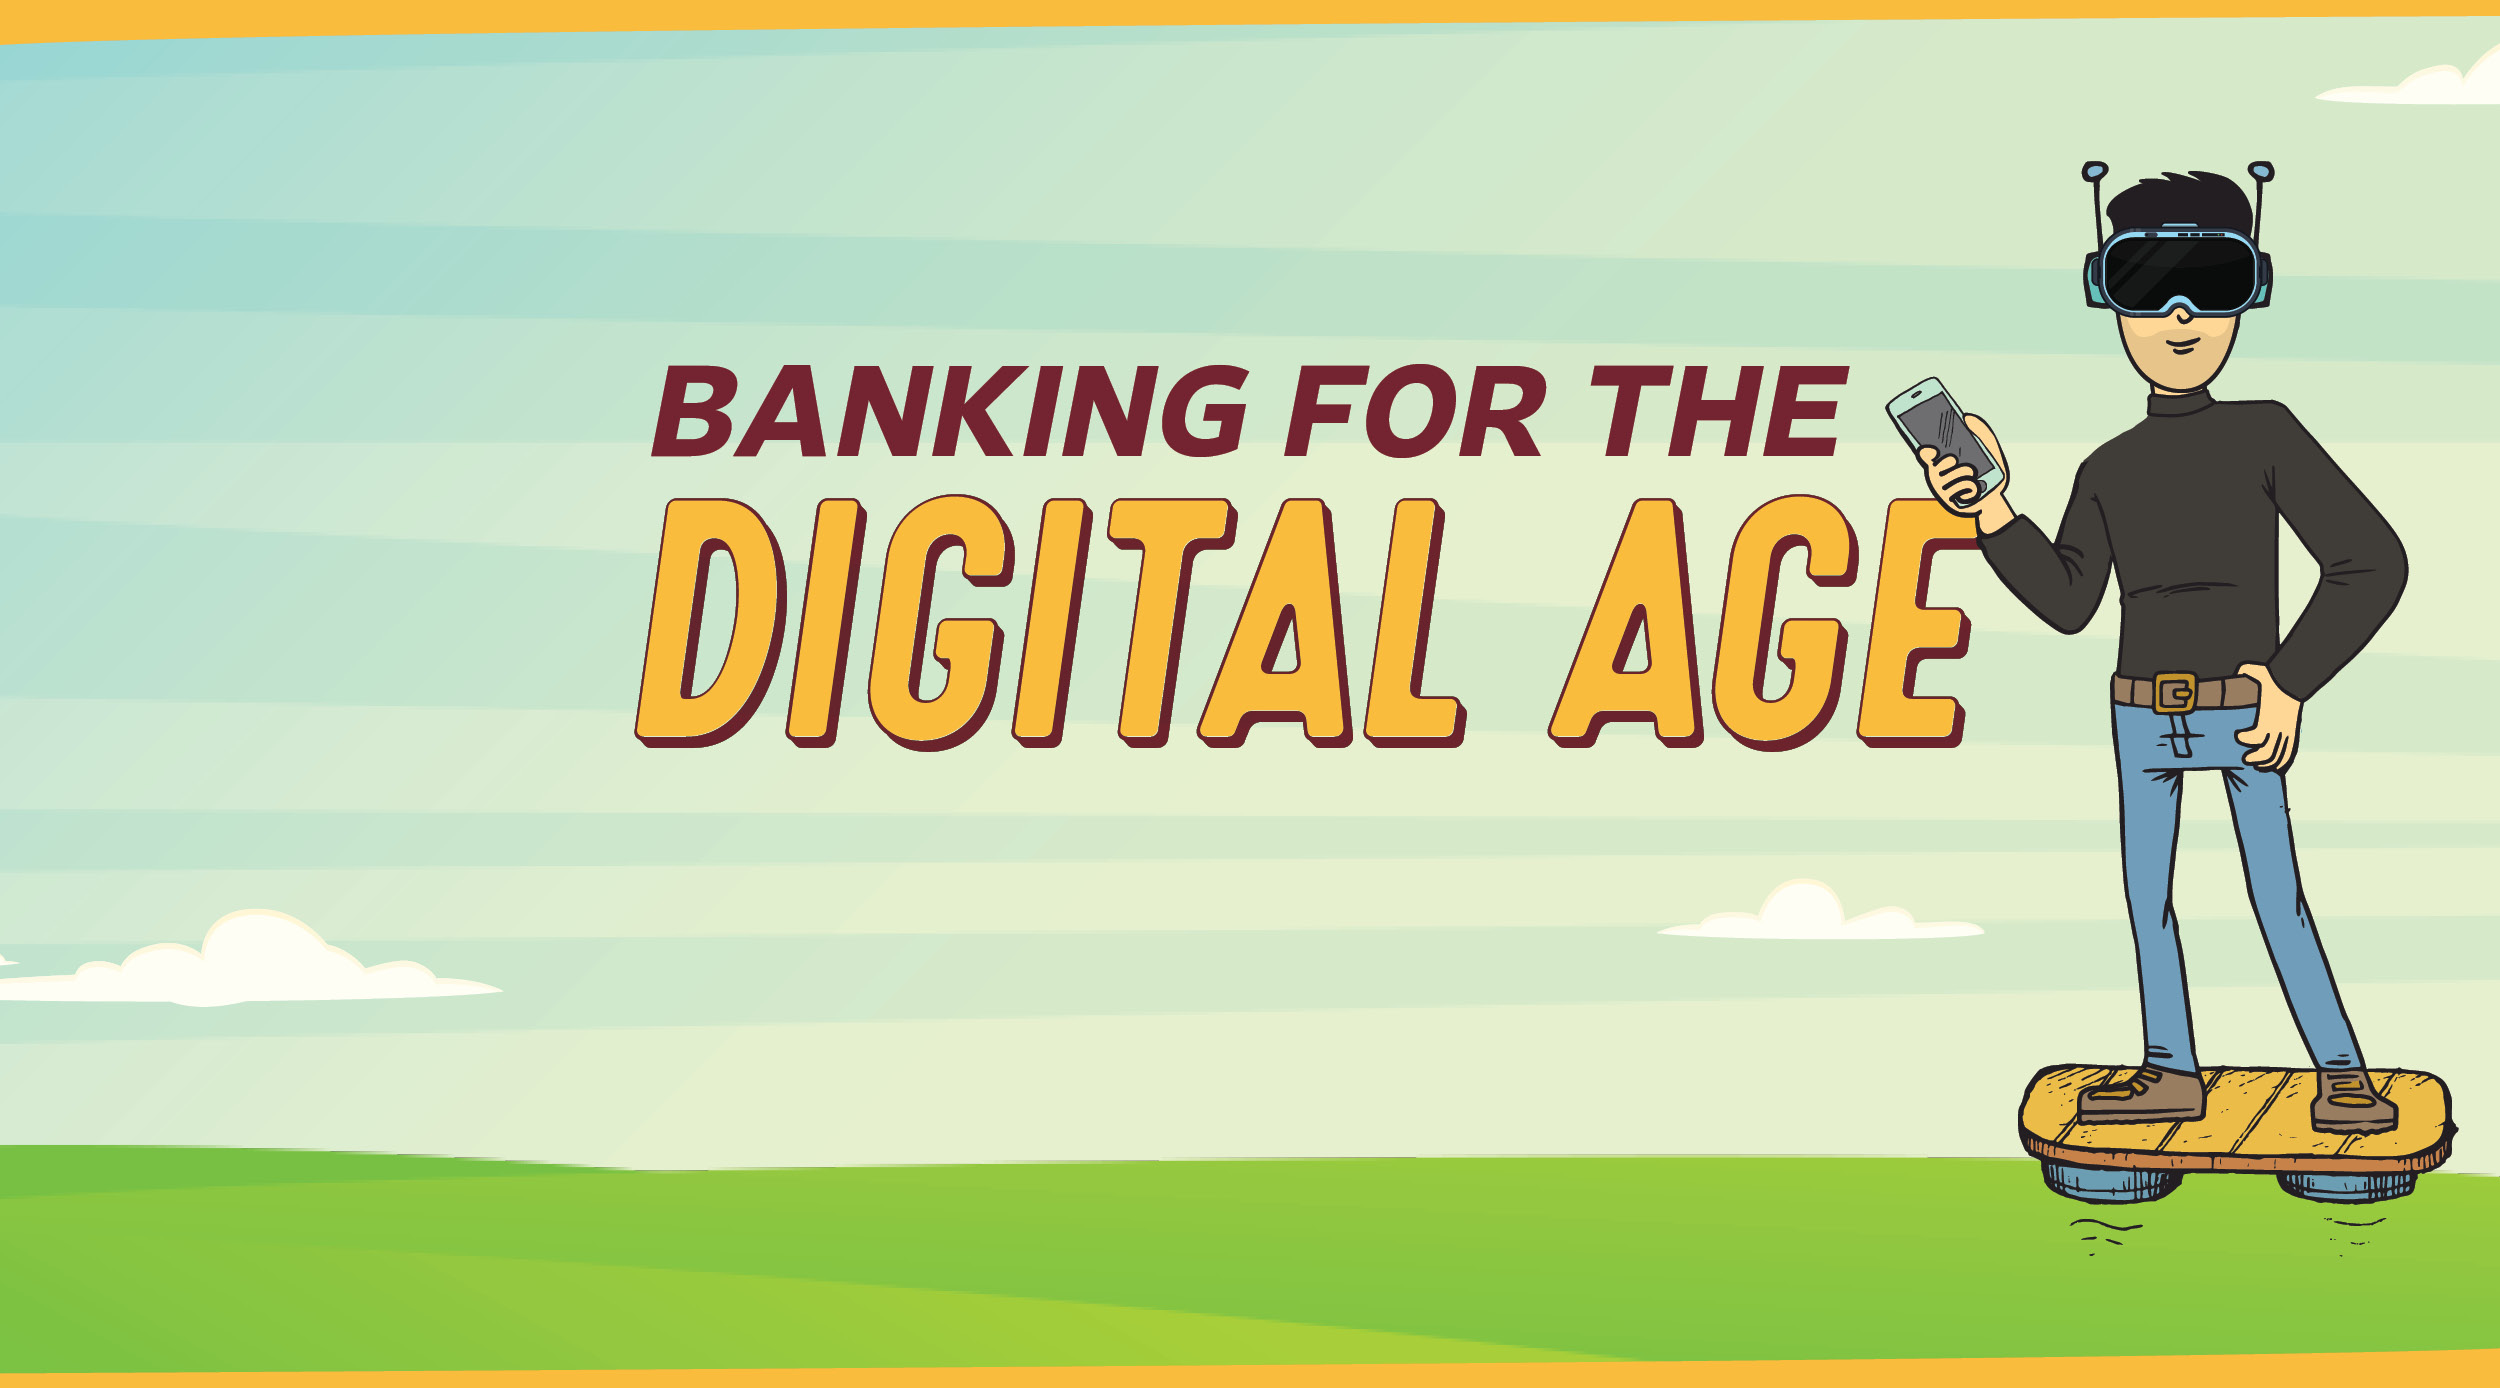 Banking for the Digital Age